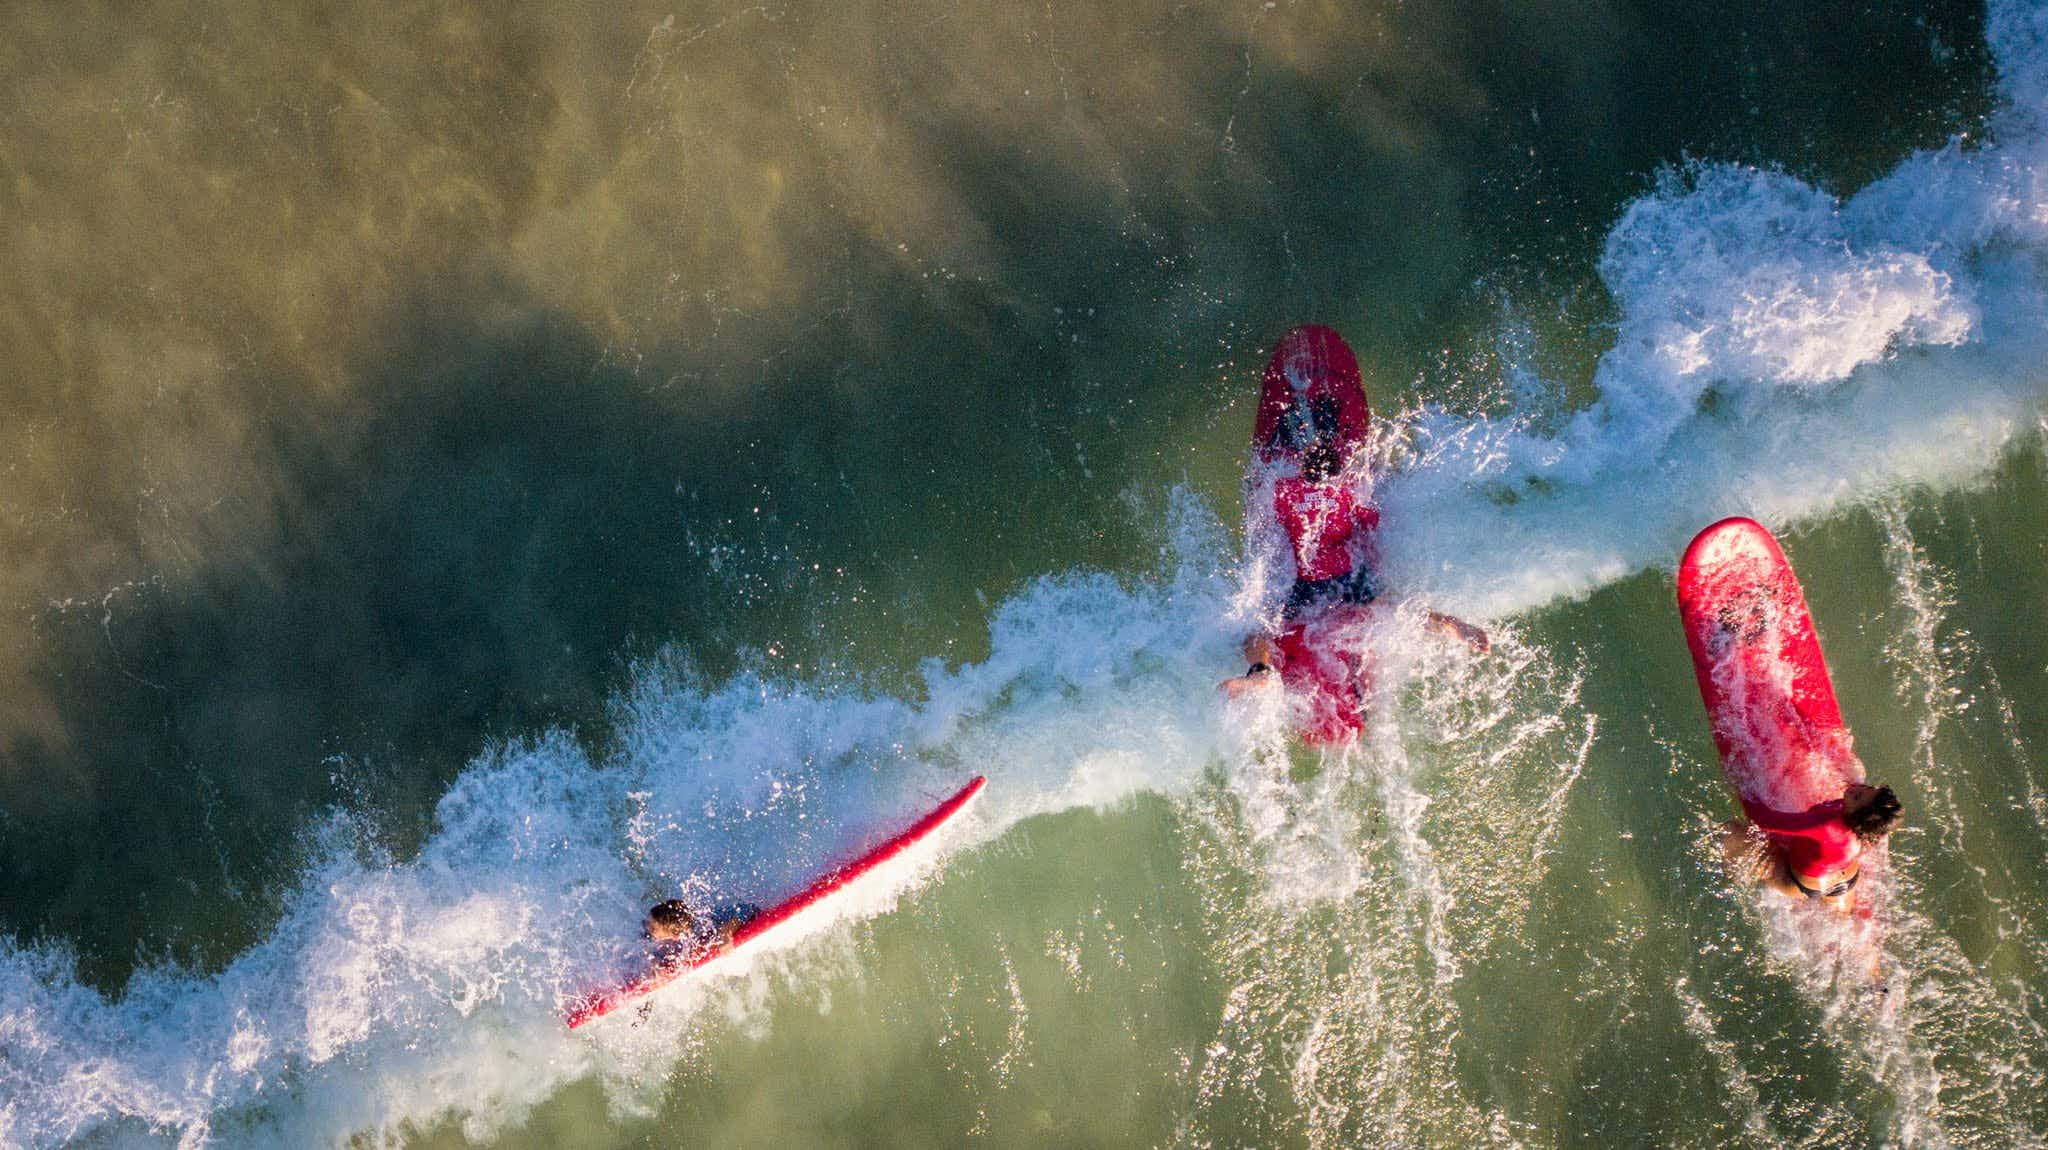 These artistic shots show surfing from a whole new angle